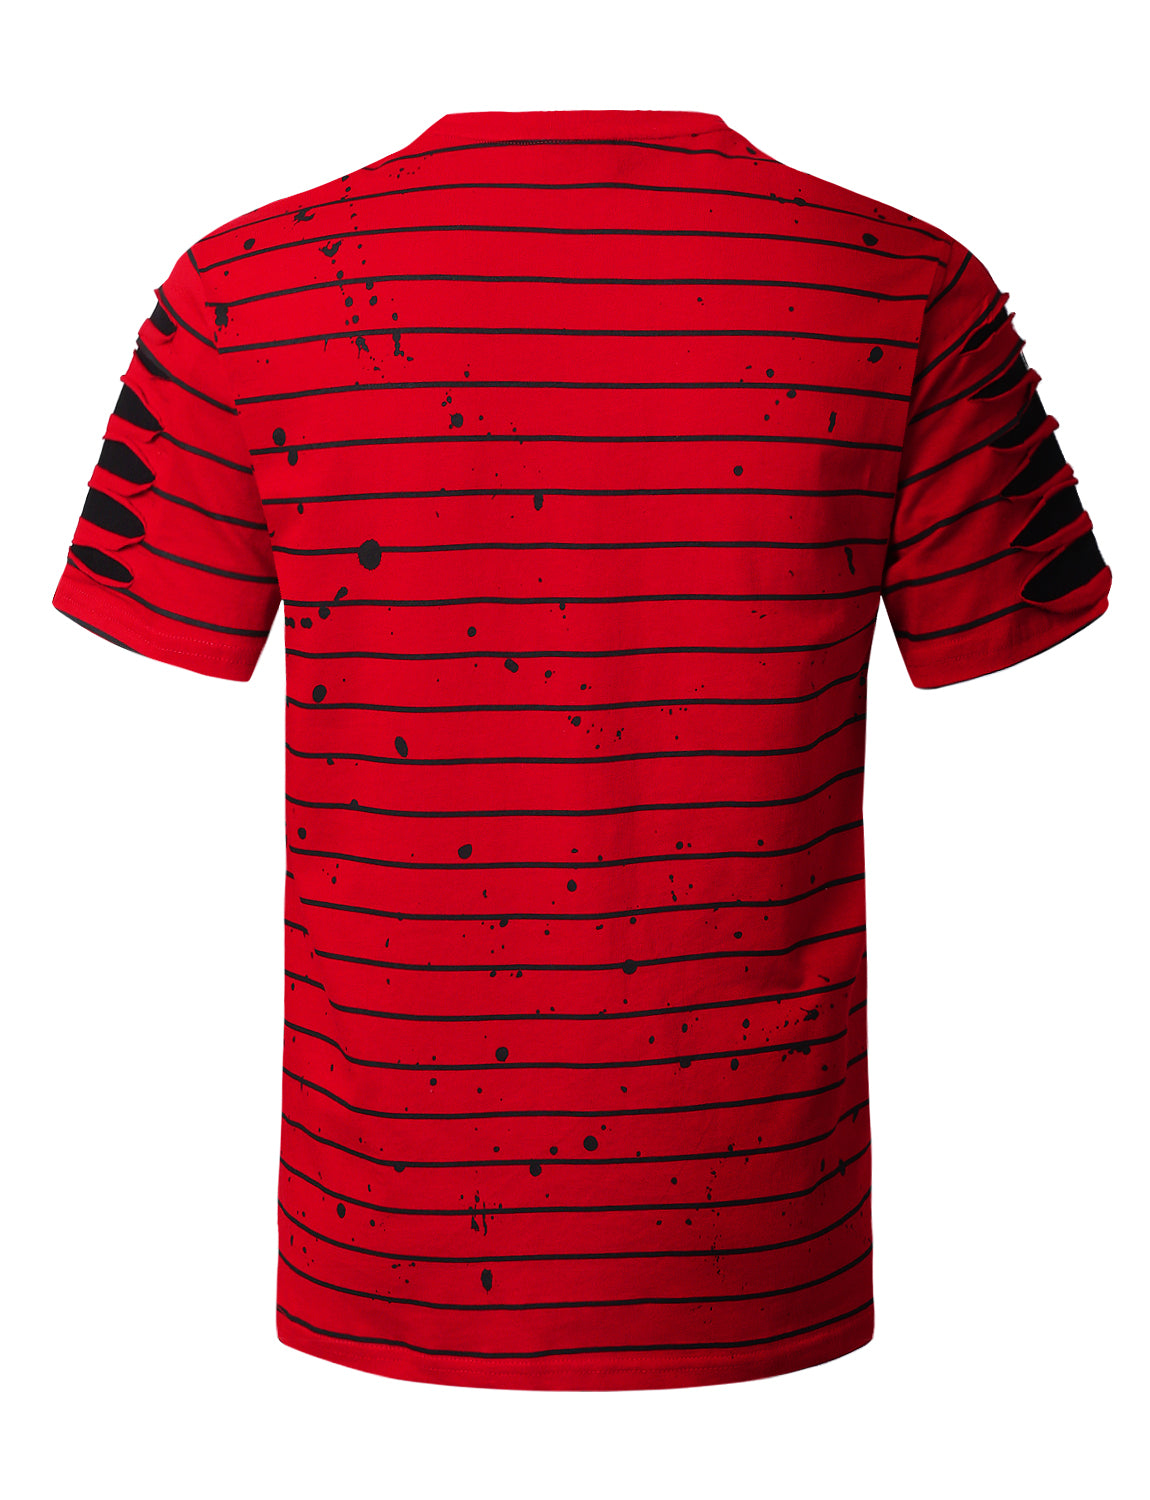 RED Splatter Striped T-shirt - URBANCREWS